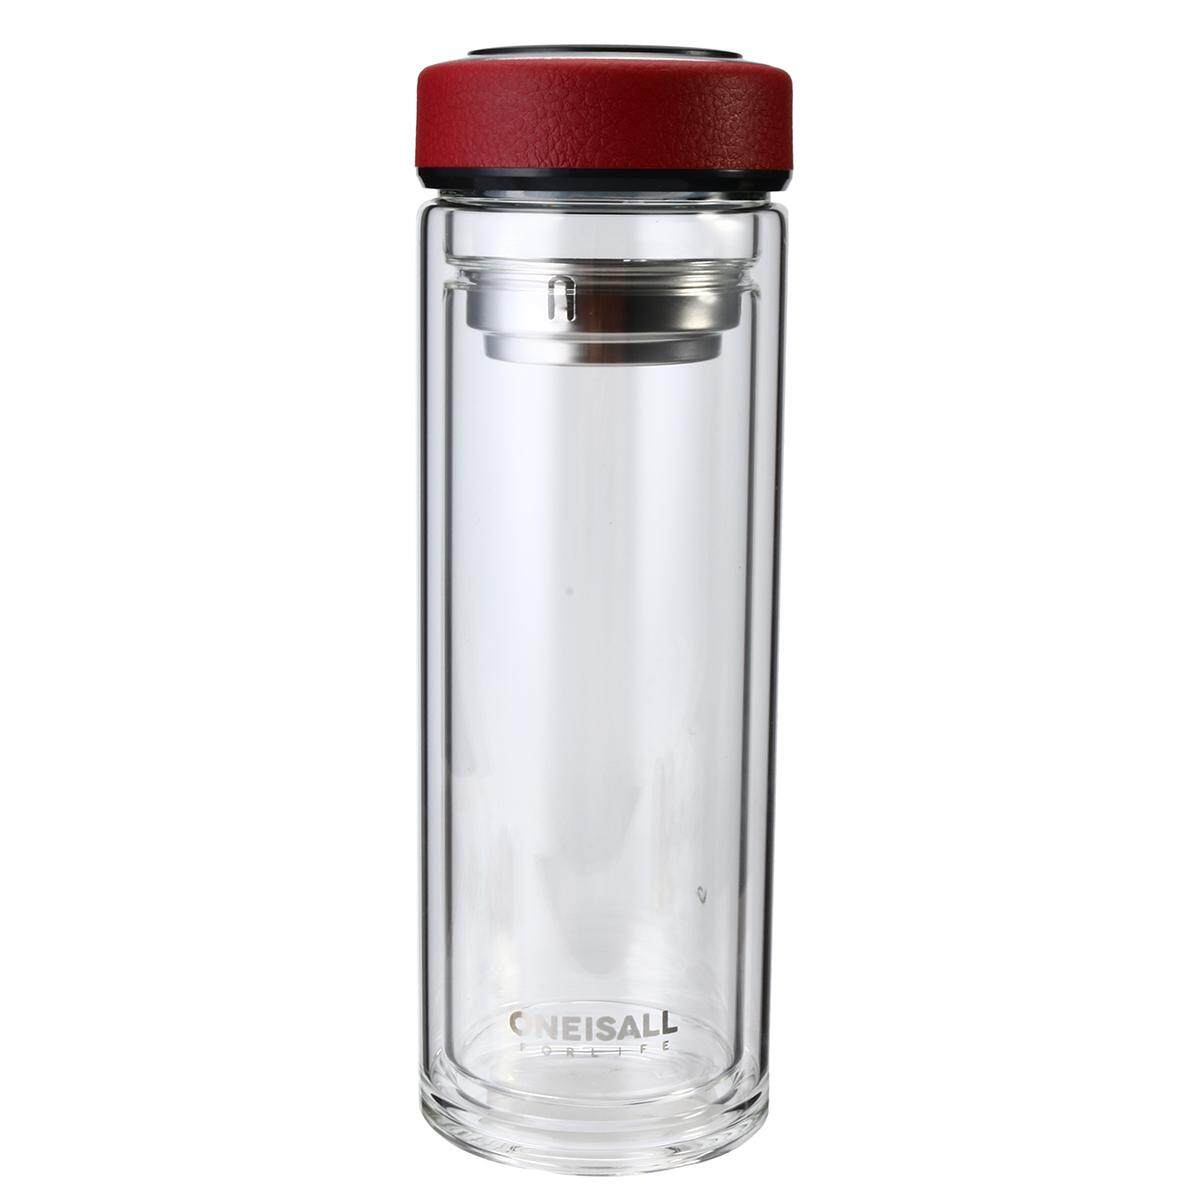 Bpa Free 500Ml Double Wall Glass Water Bottle Tumbler With Tea Infuser Strainer Lid Red Intl For Sale Online